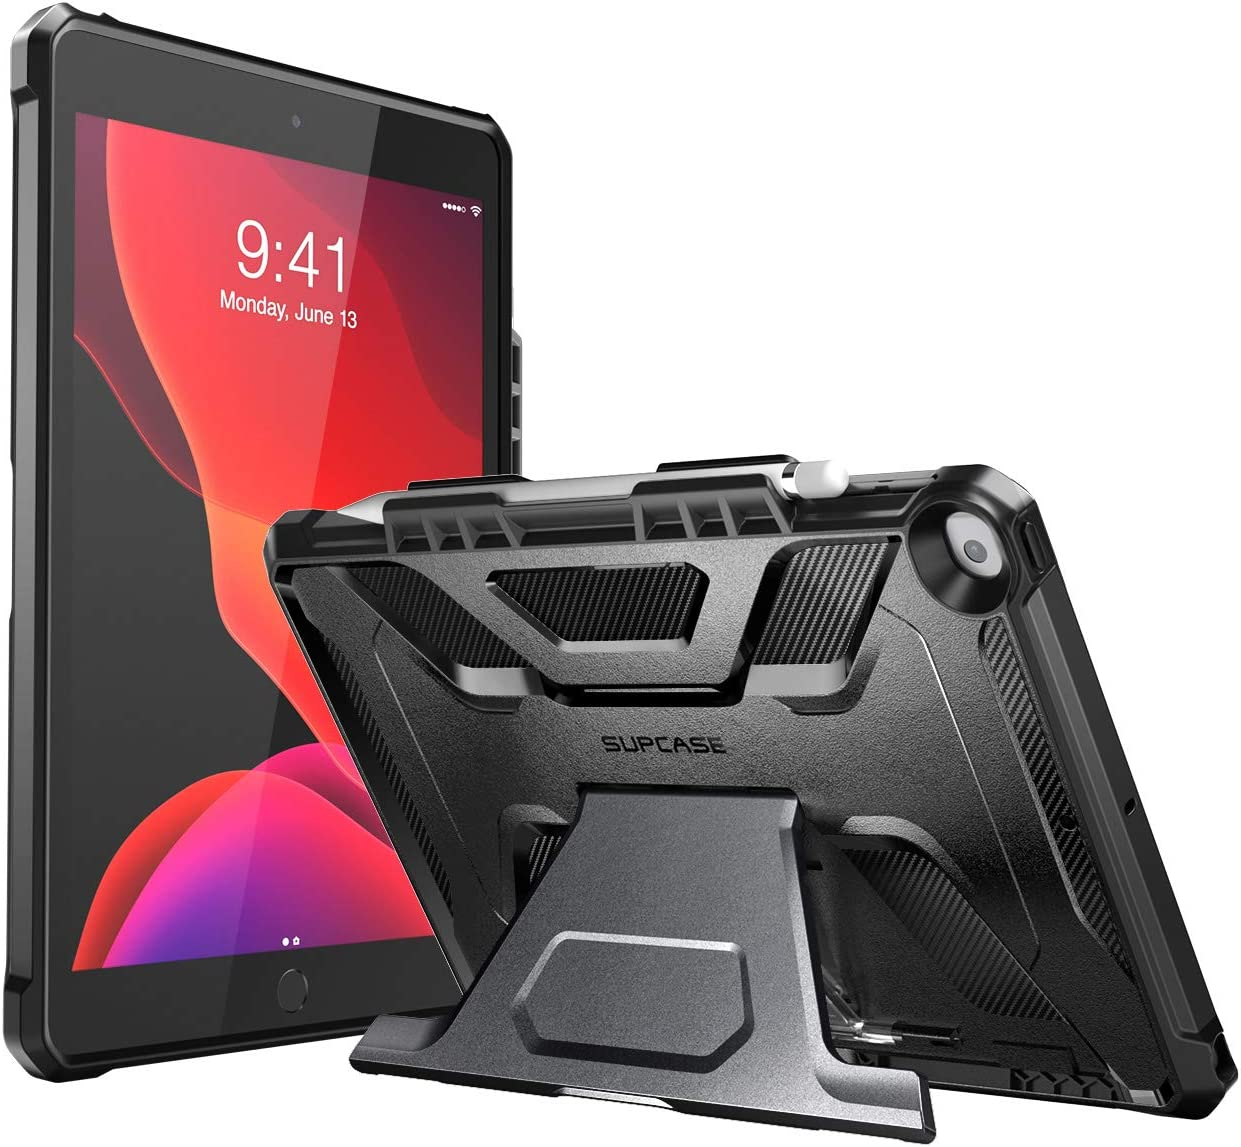 SUPCASE UB Series Designed for iPad 10.2 2019/2020, iPad Air 3 Case 10.5 Inch, with Built-in Apple Pencil Holder Full Body Rugged Protective Case for iPad 8th Generation / iPad 7th Generation(Black)